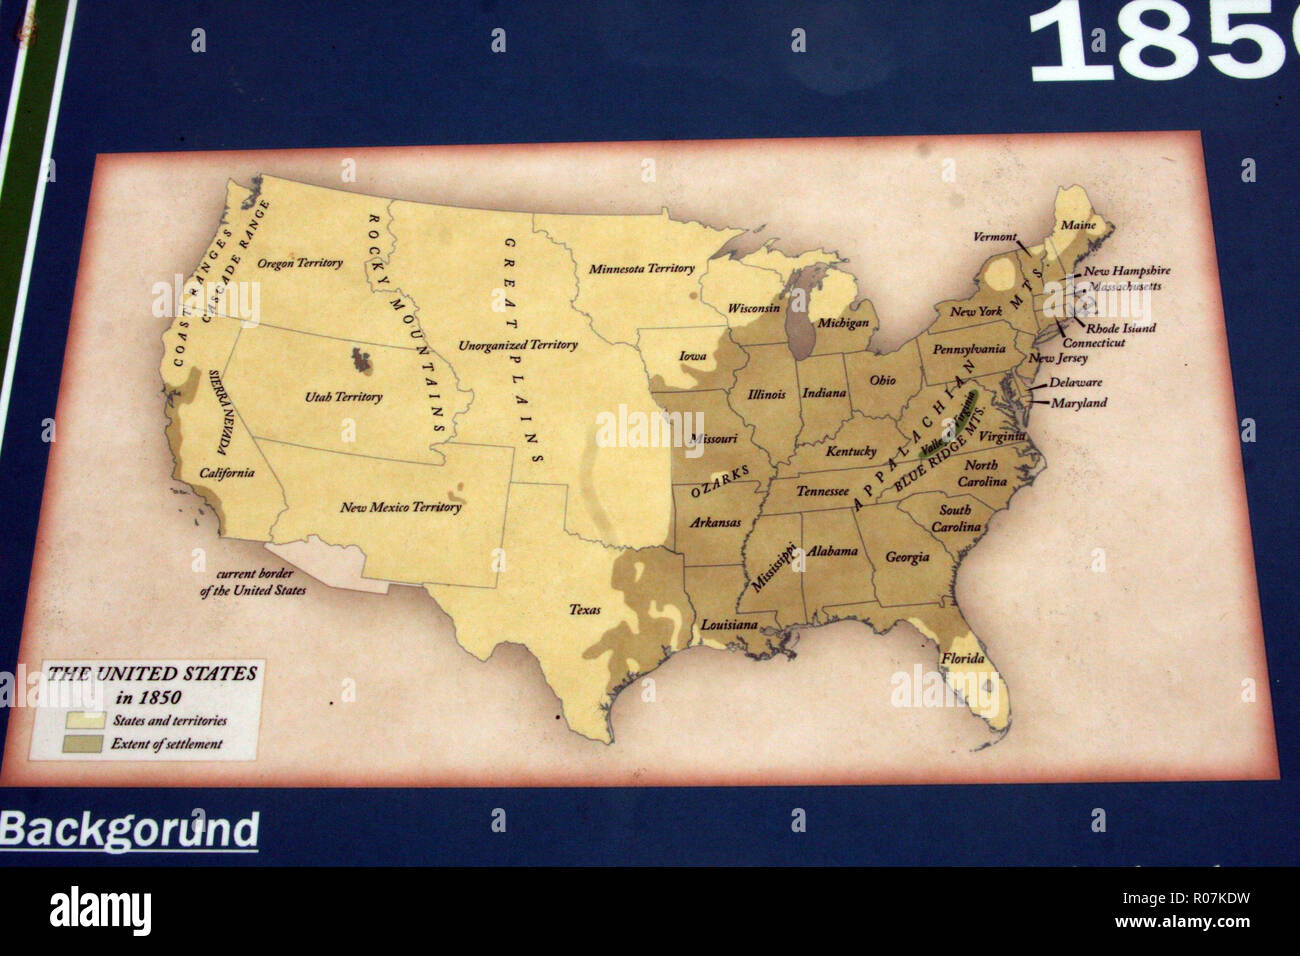 The United States of America in 1850 map Stock Photo: 223903733 - Alamy